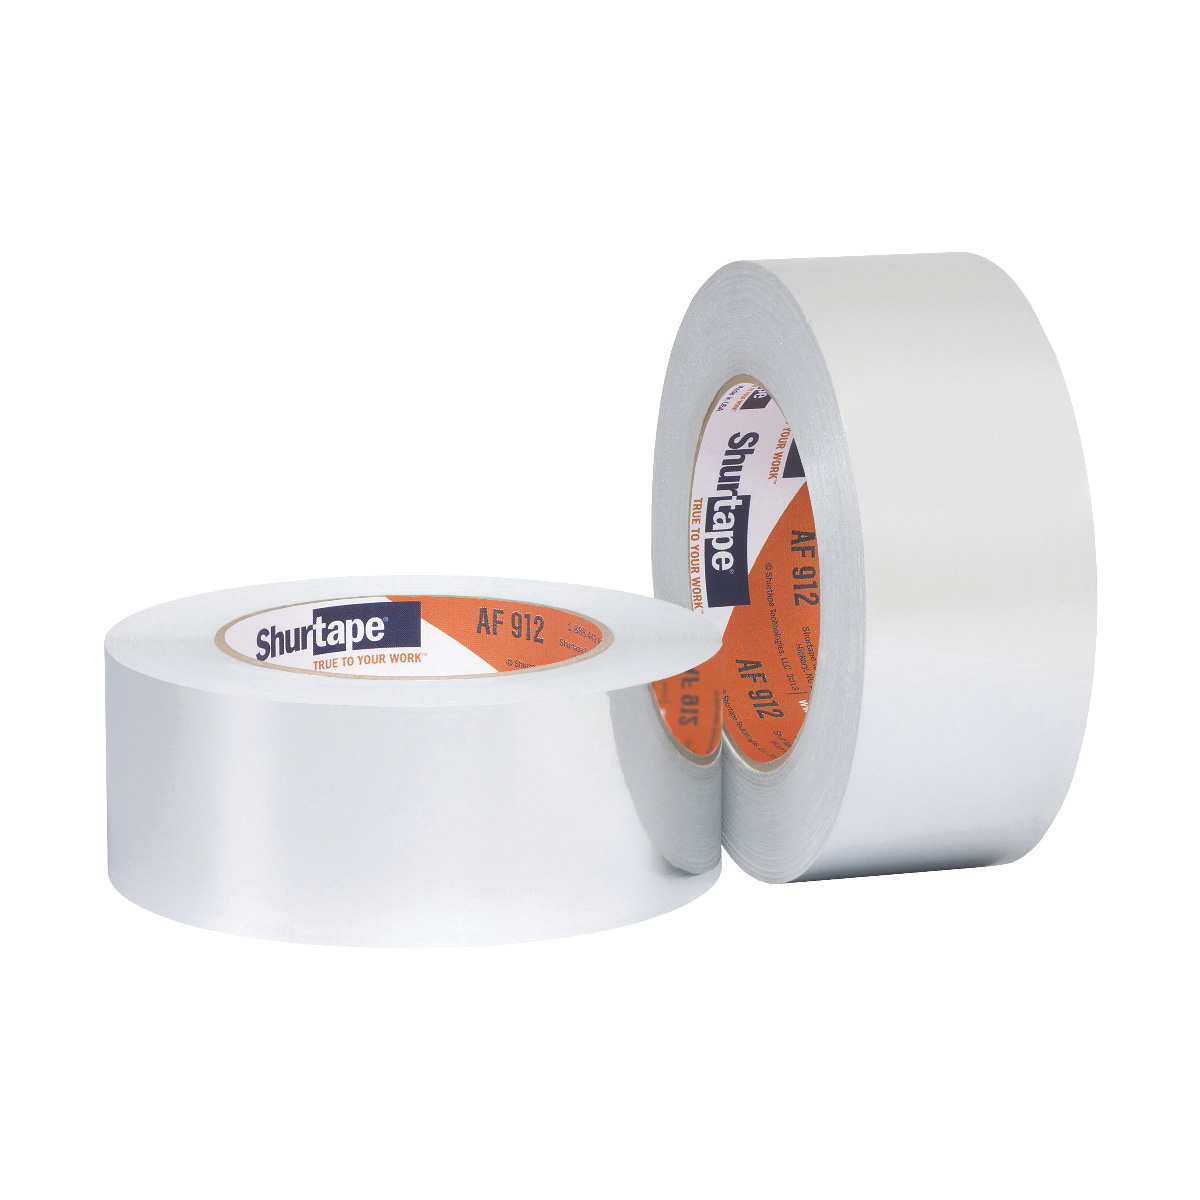 Shurtape® 101026 AF 912 HVAC Grade General Purpose Foil Tape, 50 yd L x 48 mm W, 6.4 mil with Liner/3.8 mil without Liner THK, Synthetic Rubber Adhesive, Dead-Soft Aluminum Foil Backing, Silver